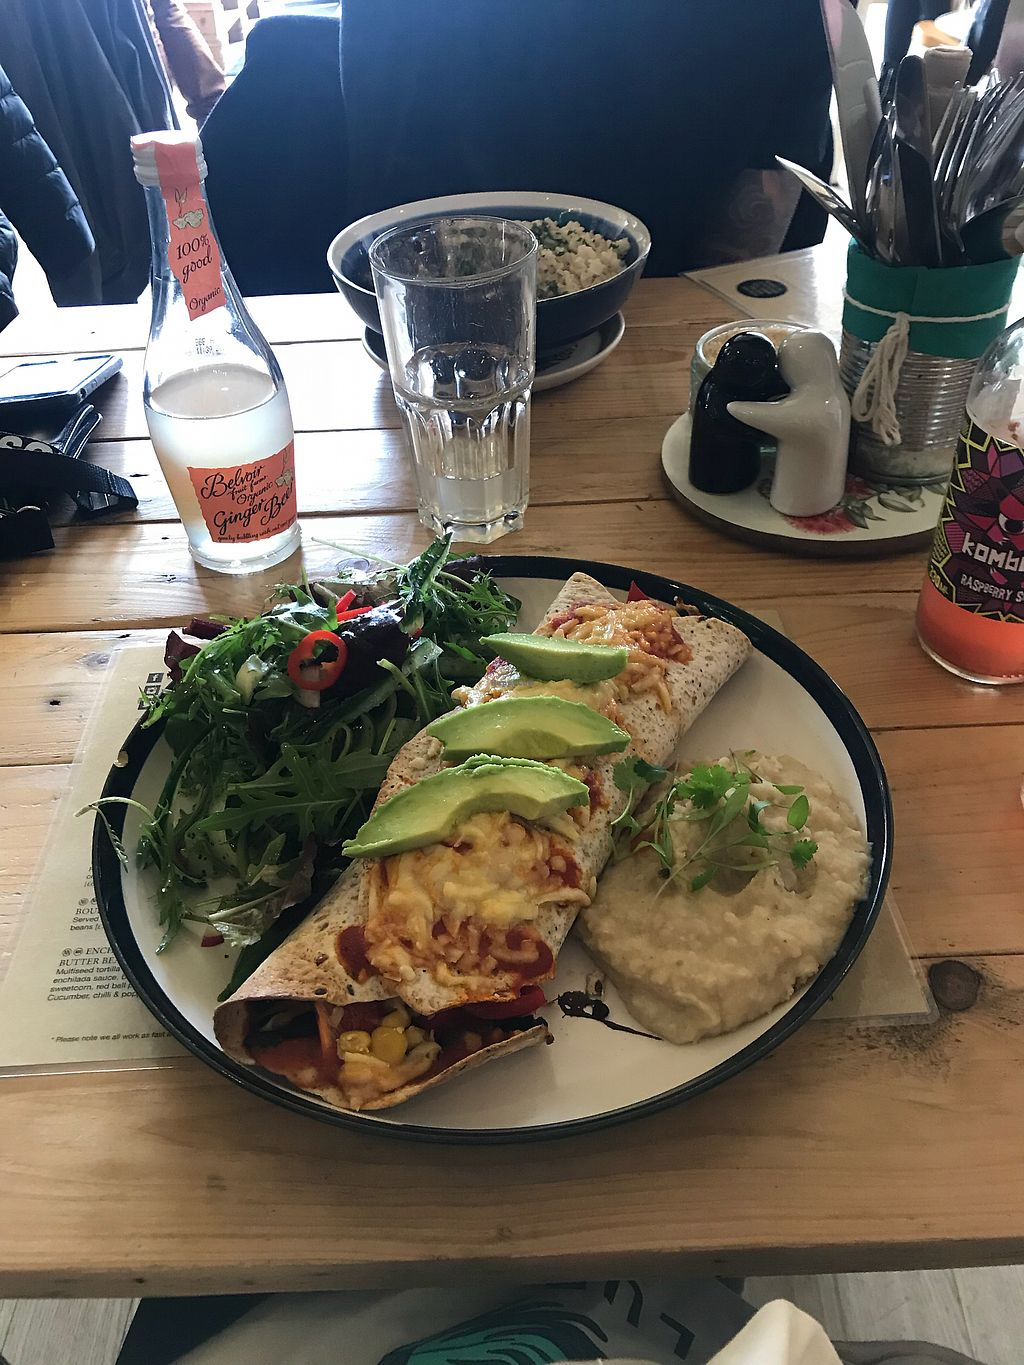 """Photo of Mad Cucumber - Vegan Lounge  by <a href=""""/members/profile/fernandacassel"""">fernandacassel</a> <br/>Enchillada <br/> March 18, 2018  - <a href='/contact/abuse/image/39613/372470'>Report</a>"""